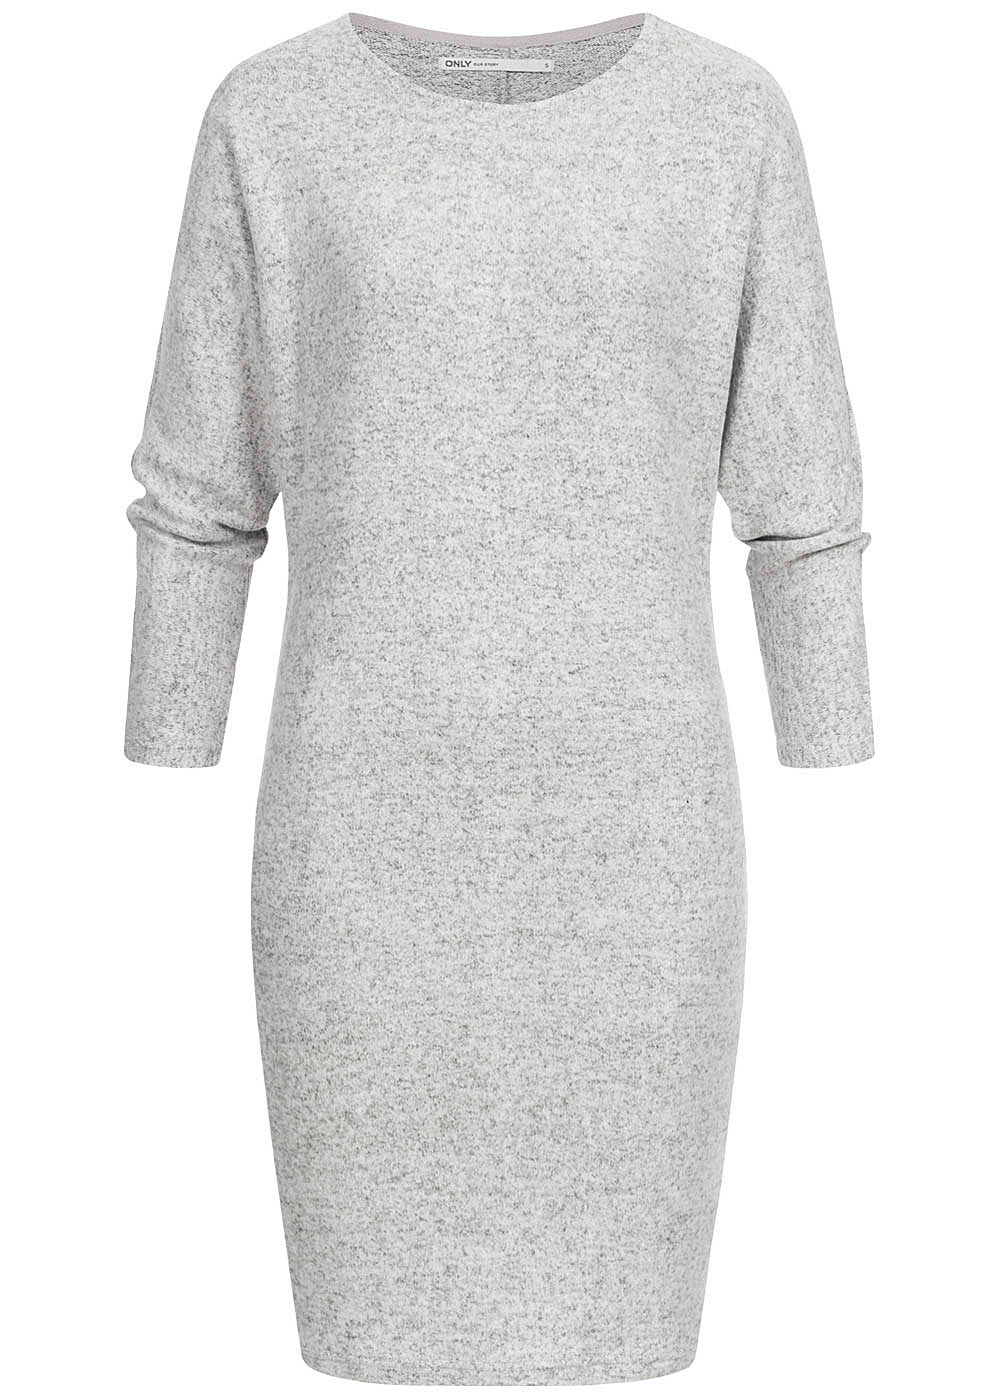 ONLY Damen 7/8 Bat Sleeve Knit Dress hell grau melange - Art.-Nr.: 19083557